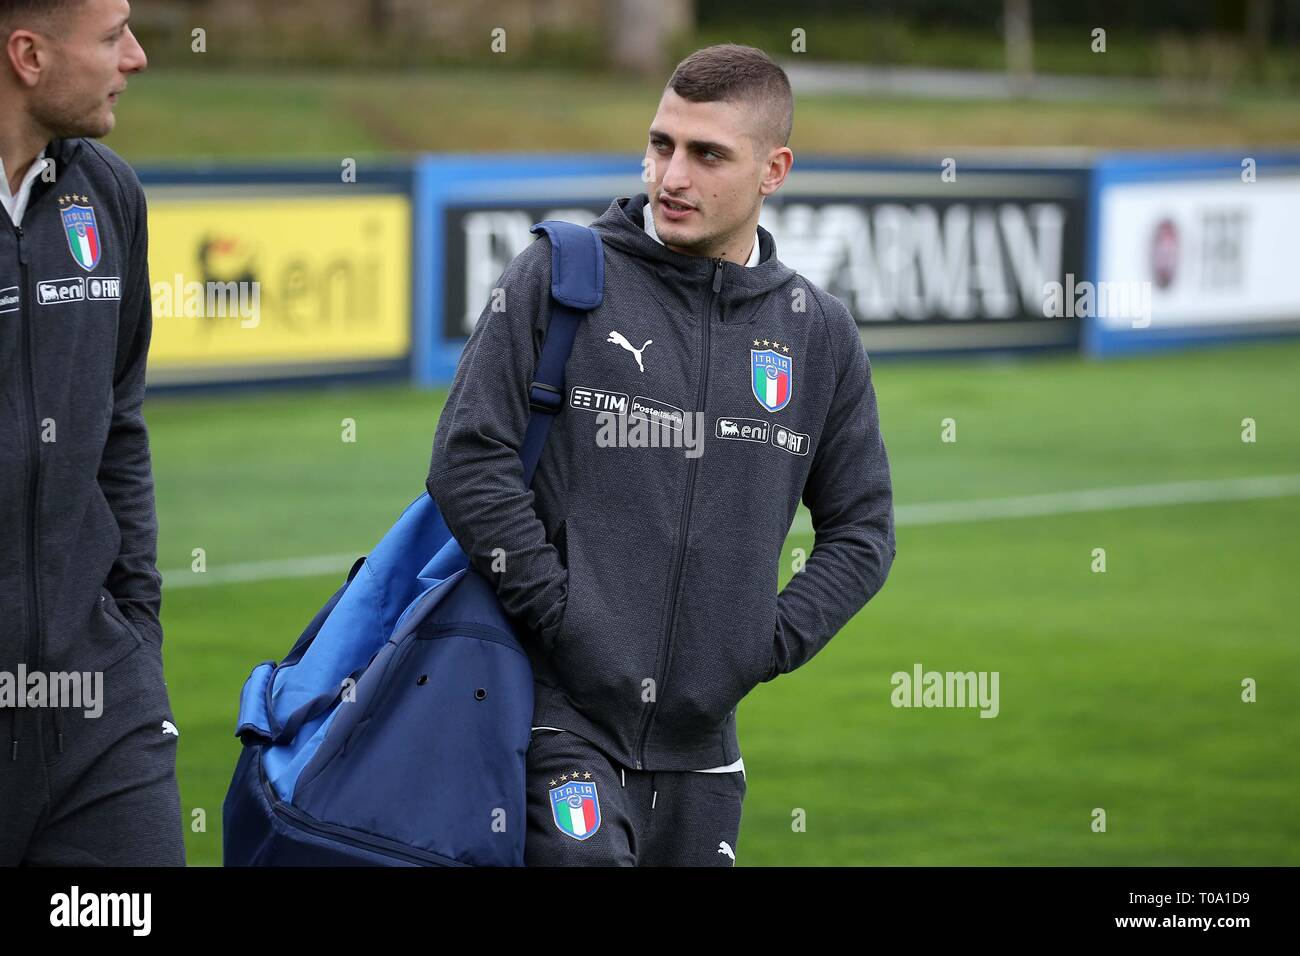 Marco Verratti High Resolution Stock Photography and Images - Alamy